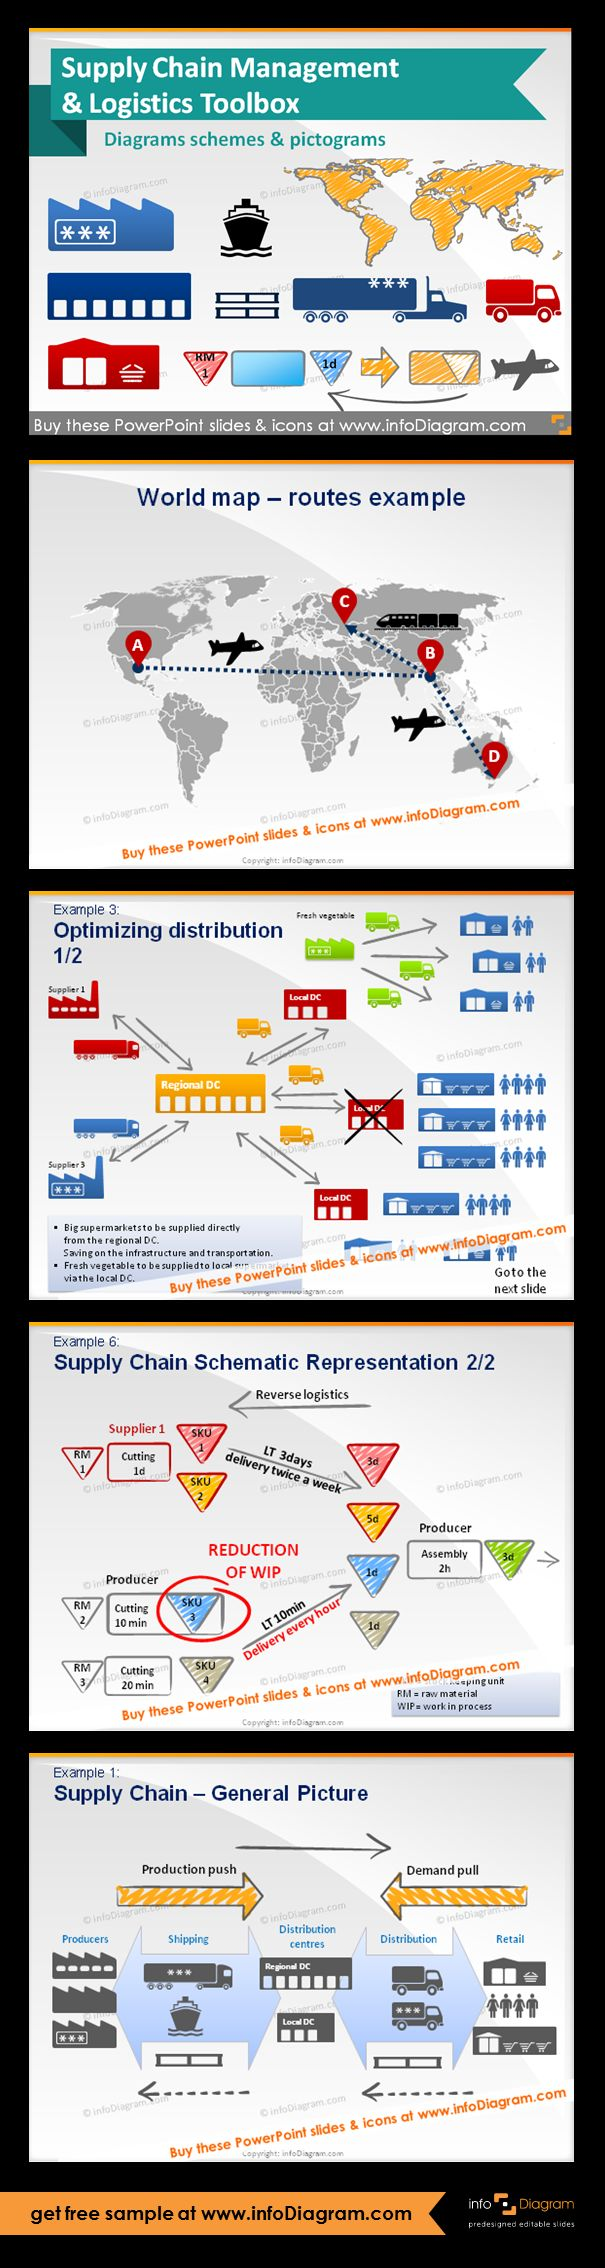 Supply Chain and Logistics schema diagrams & pictogram icons - editable graphical elements for PowerPoint. Fully adaptable vector shapes (color, filling, size). Routes example illustrated in the world map. Optimizing distribution schema. Supply Chain Schematic Representation. Supply Chain - general picture of related logistics.